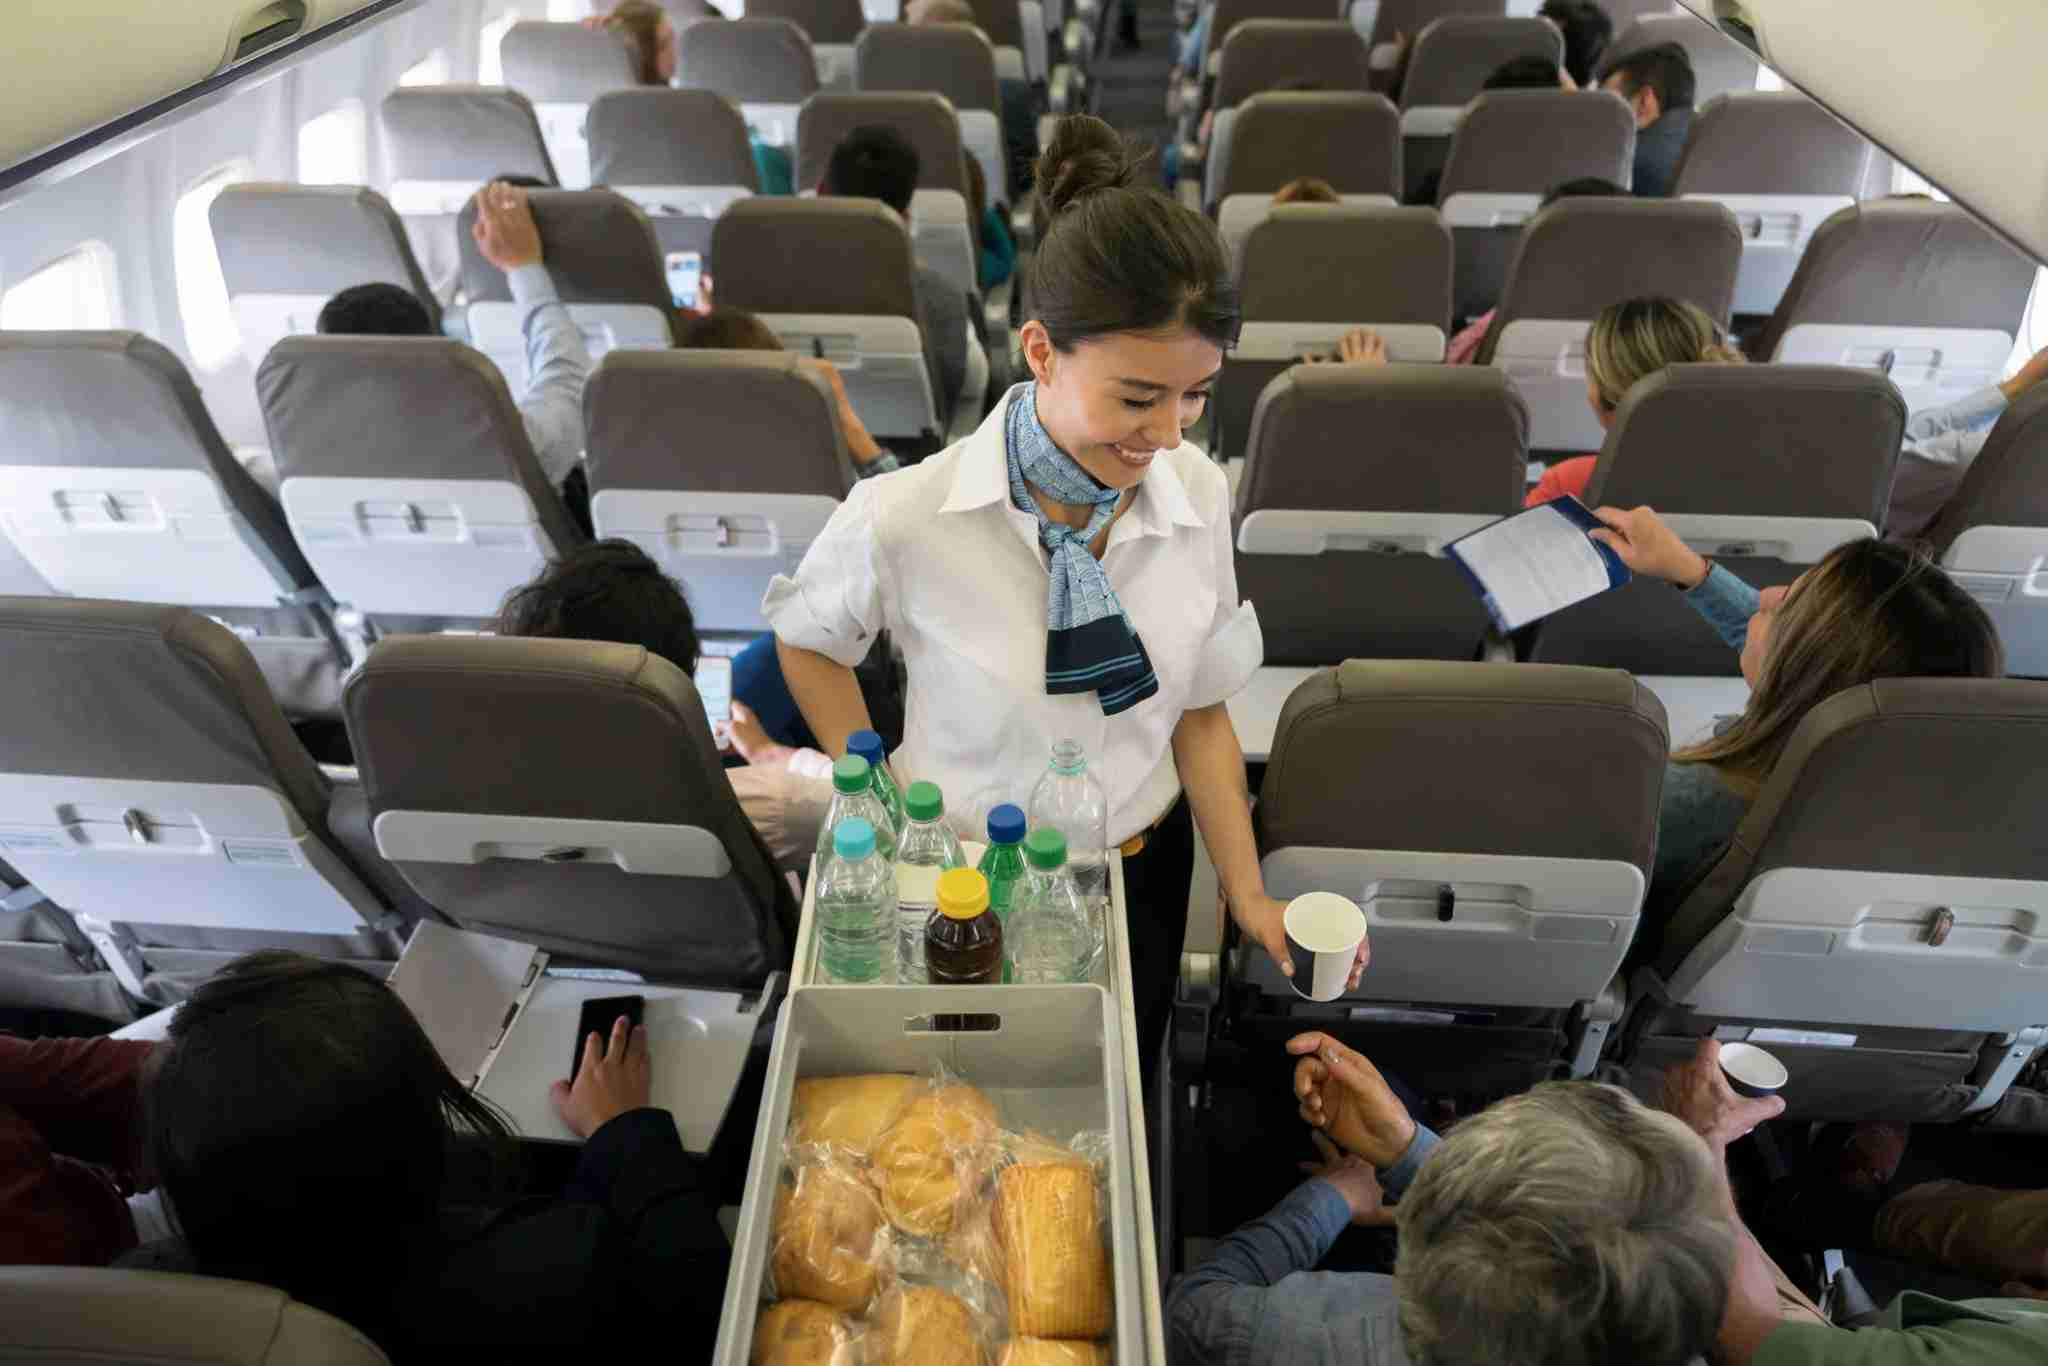 Portrait of a friendly air hostess serving food and drinks onboard and smiling - travel concepts